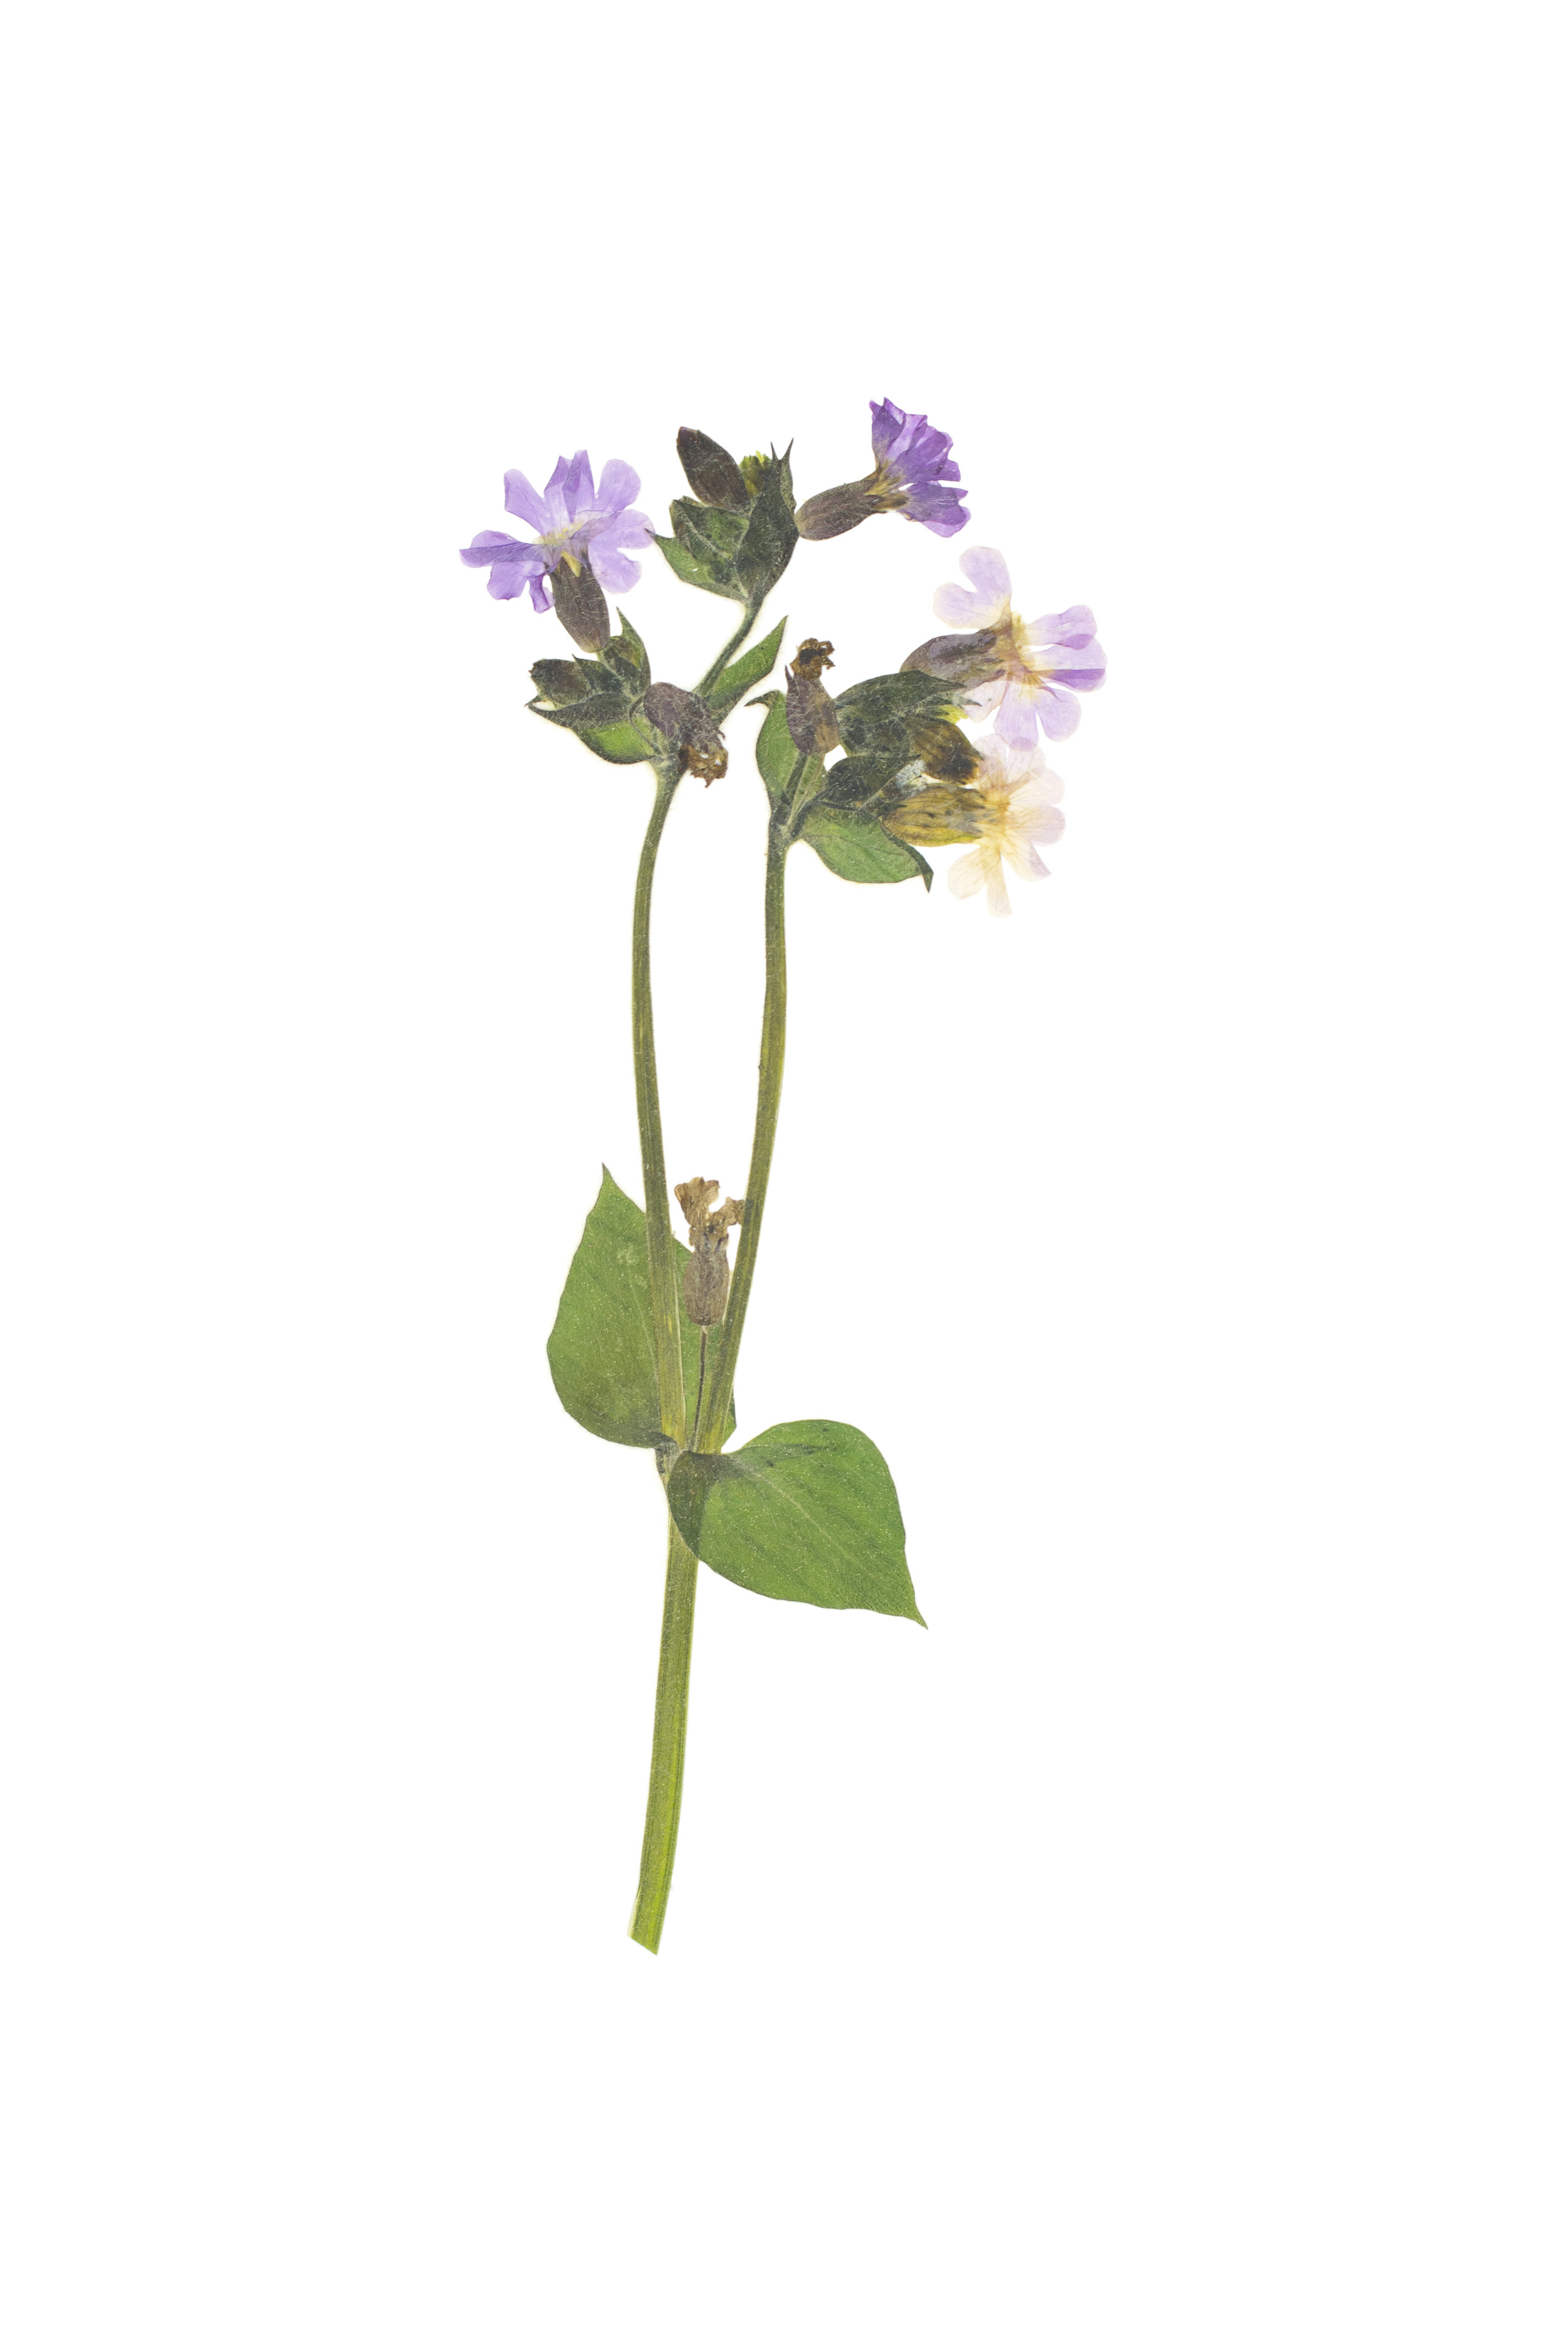 Red Campion / Silene dioica